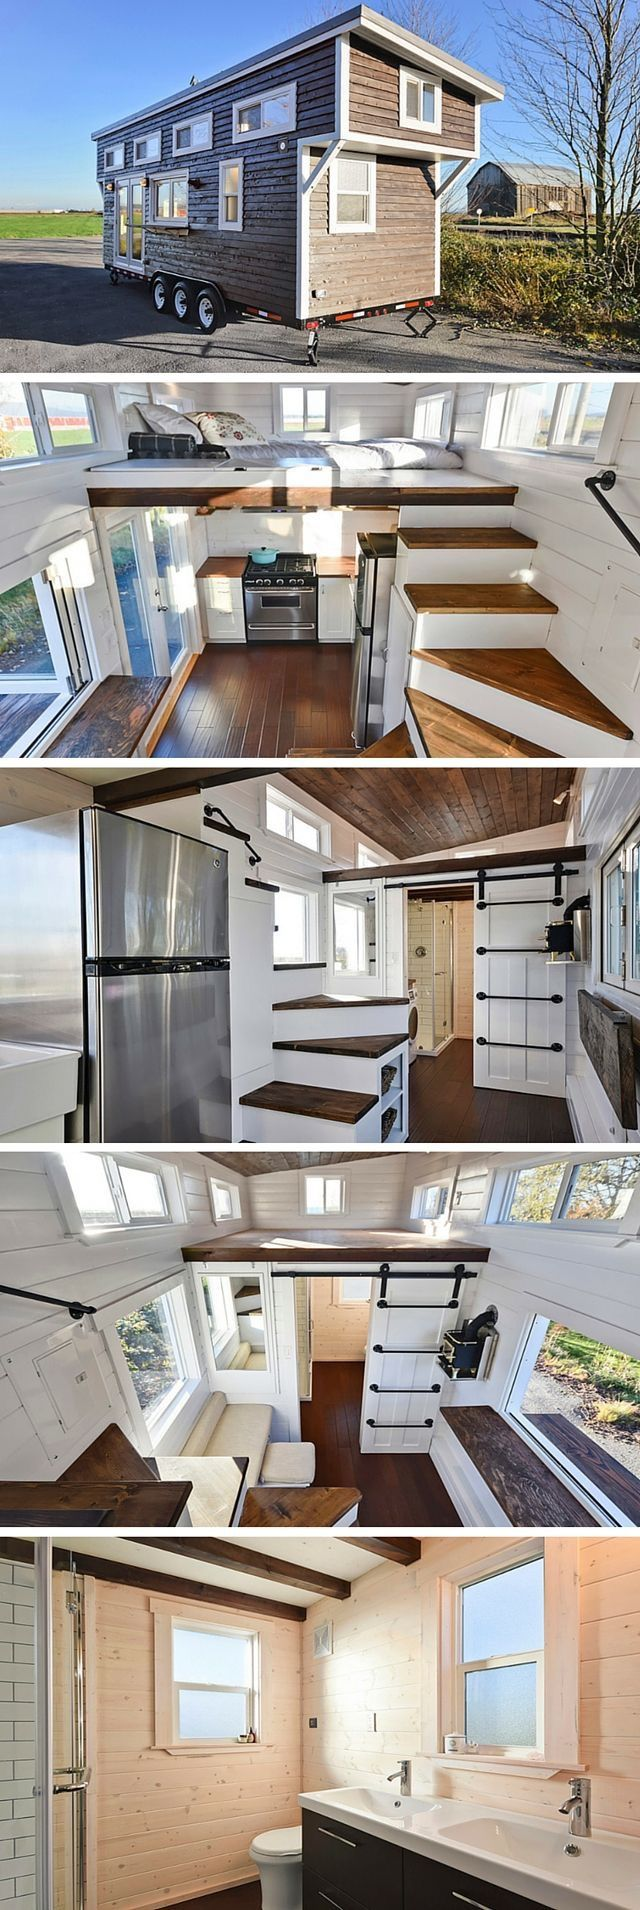 Tiny home with double sink in the bathroom!